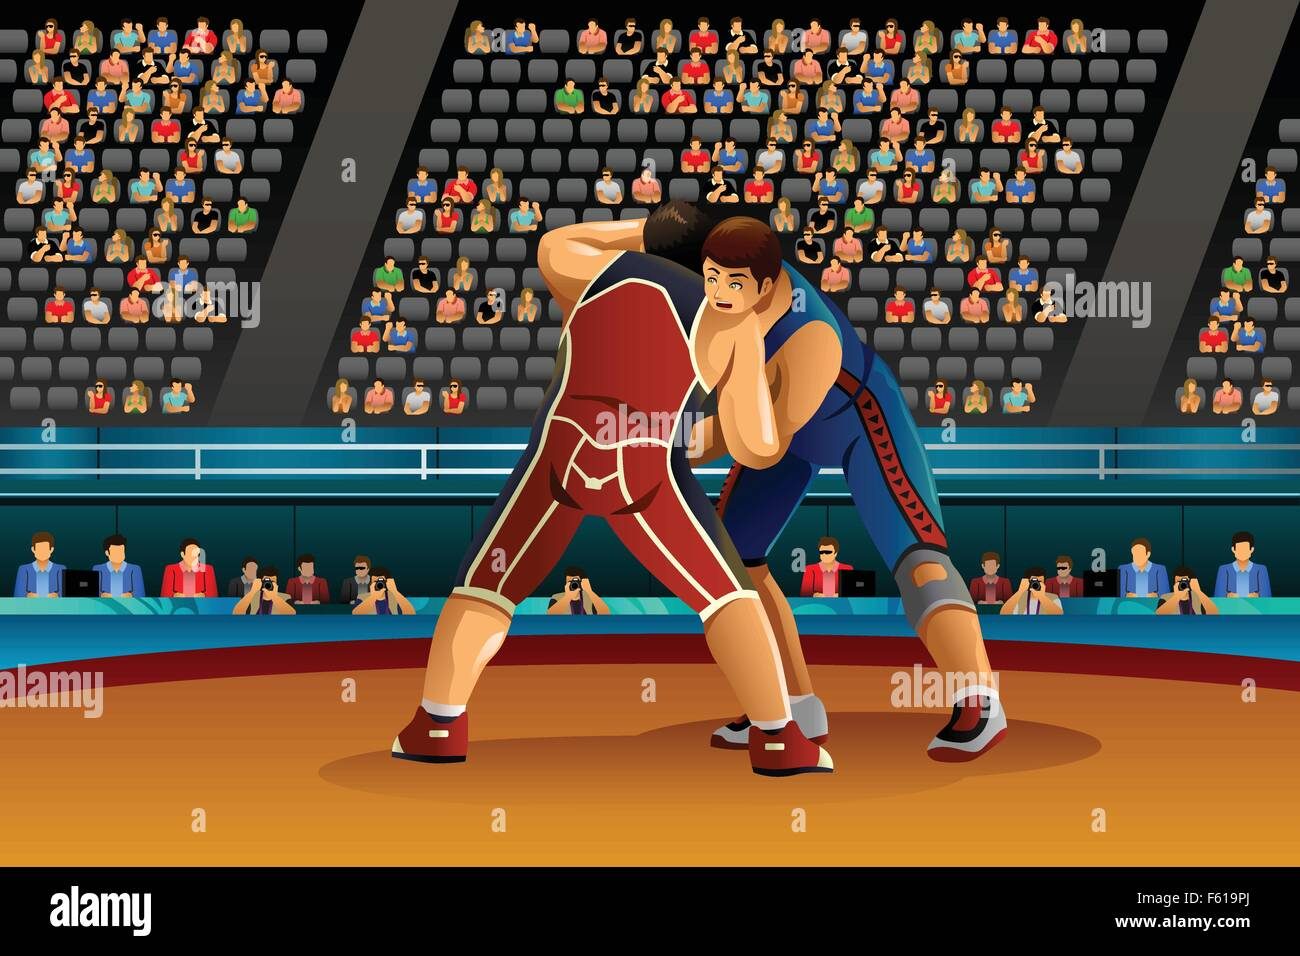 A vector illustration of two male athletes wrestle in the competition for sport competition series - Stock Image